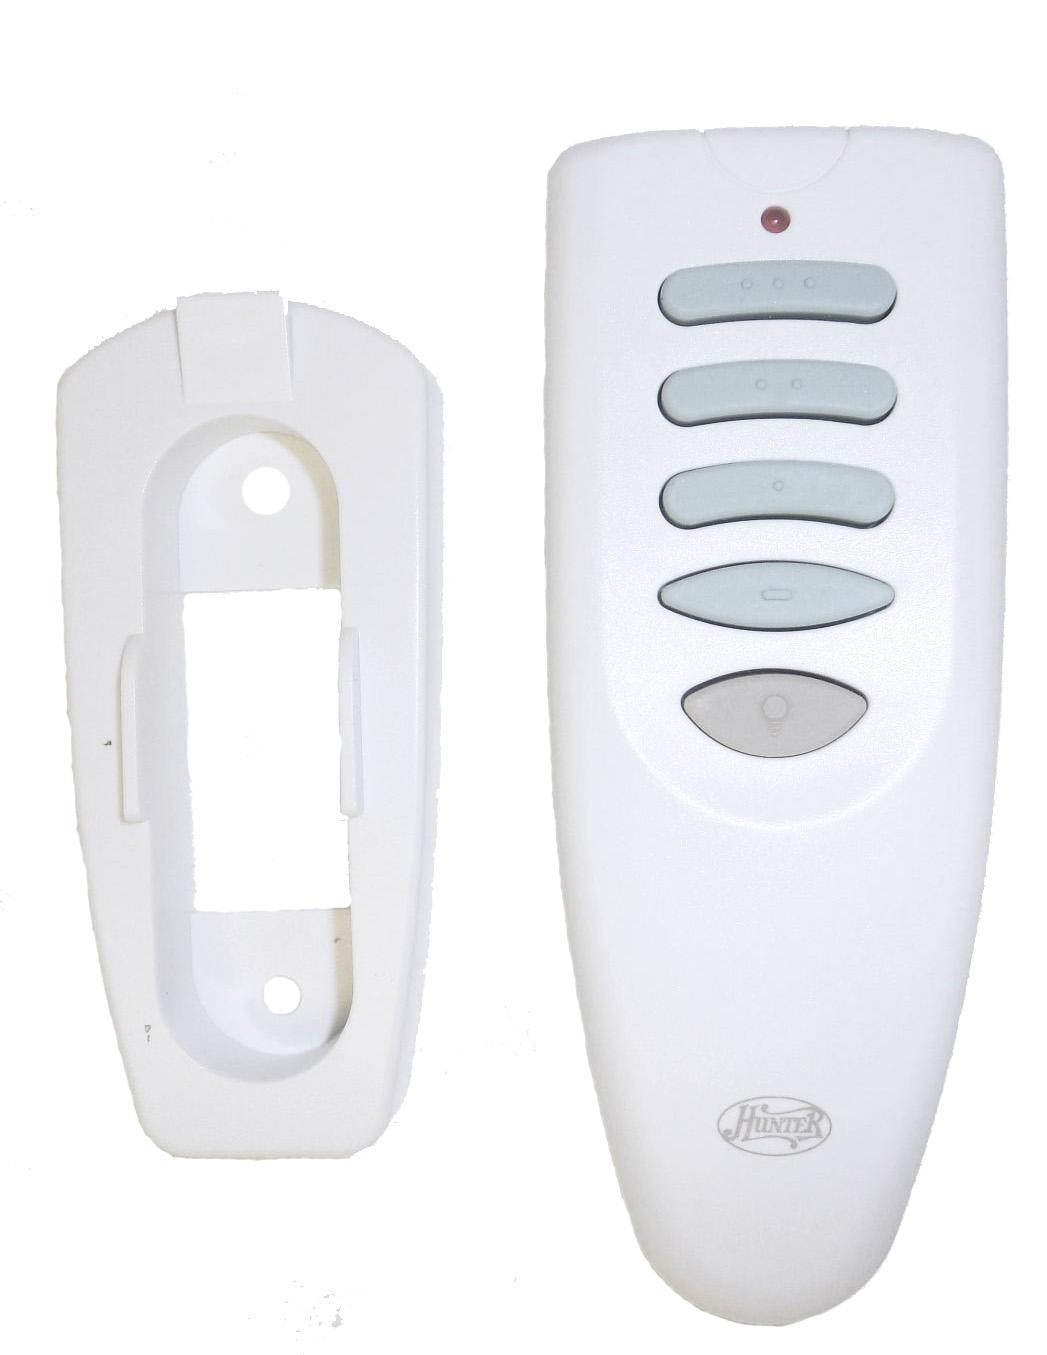 Hunter Ceiling Fan Remote Control Replacement